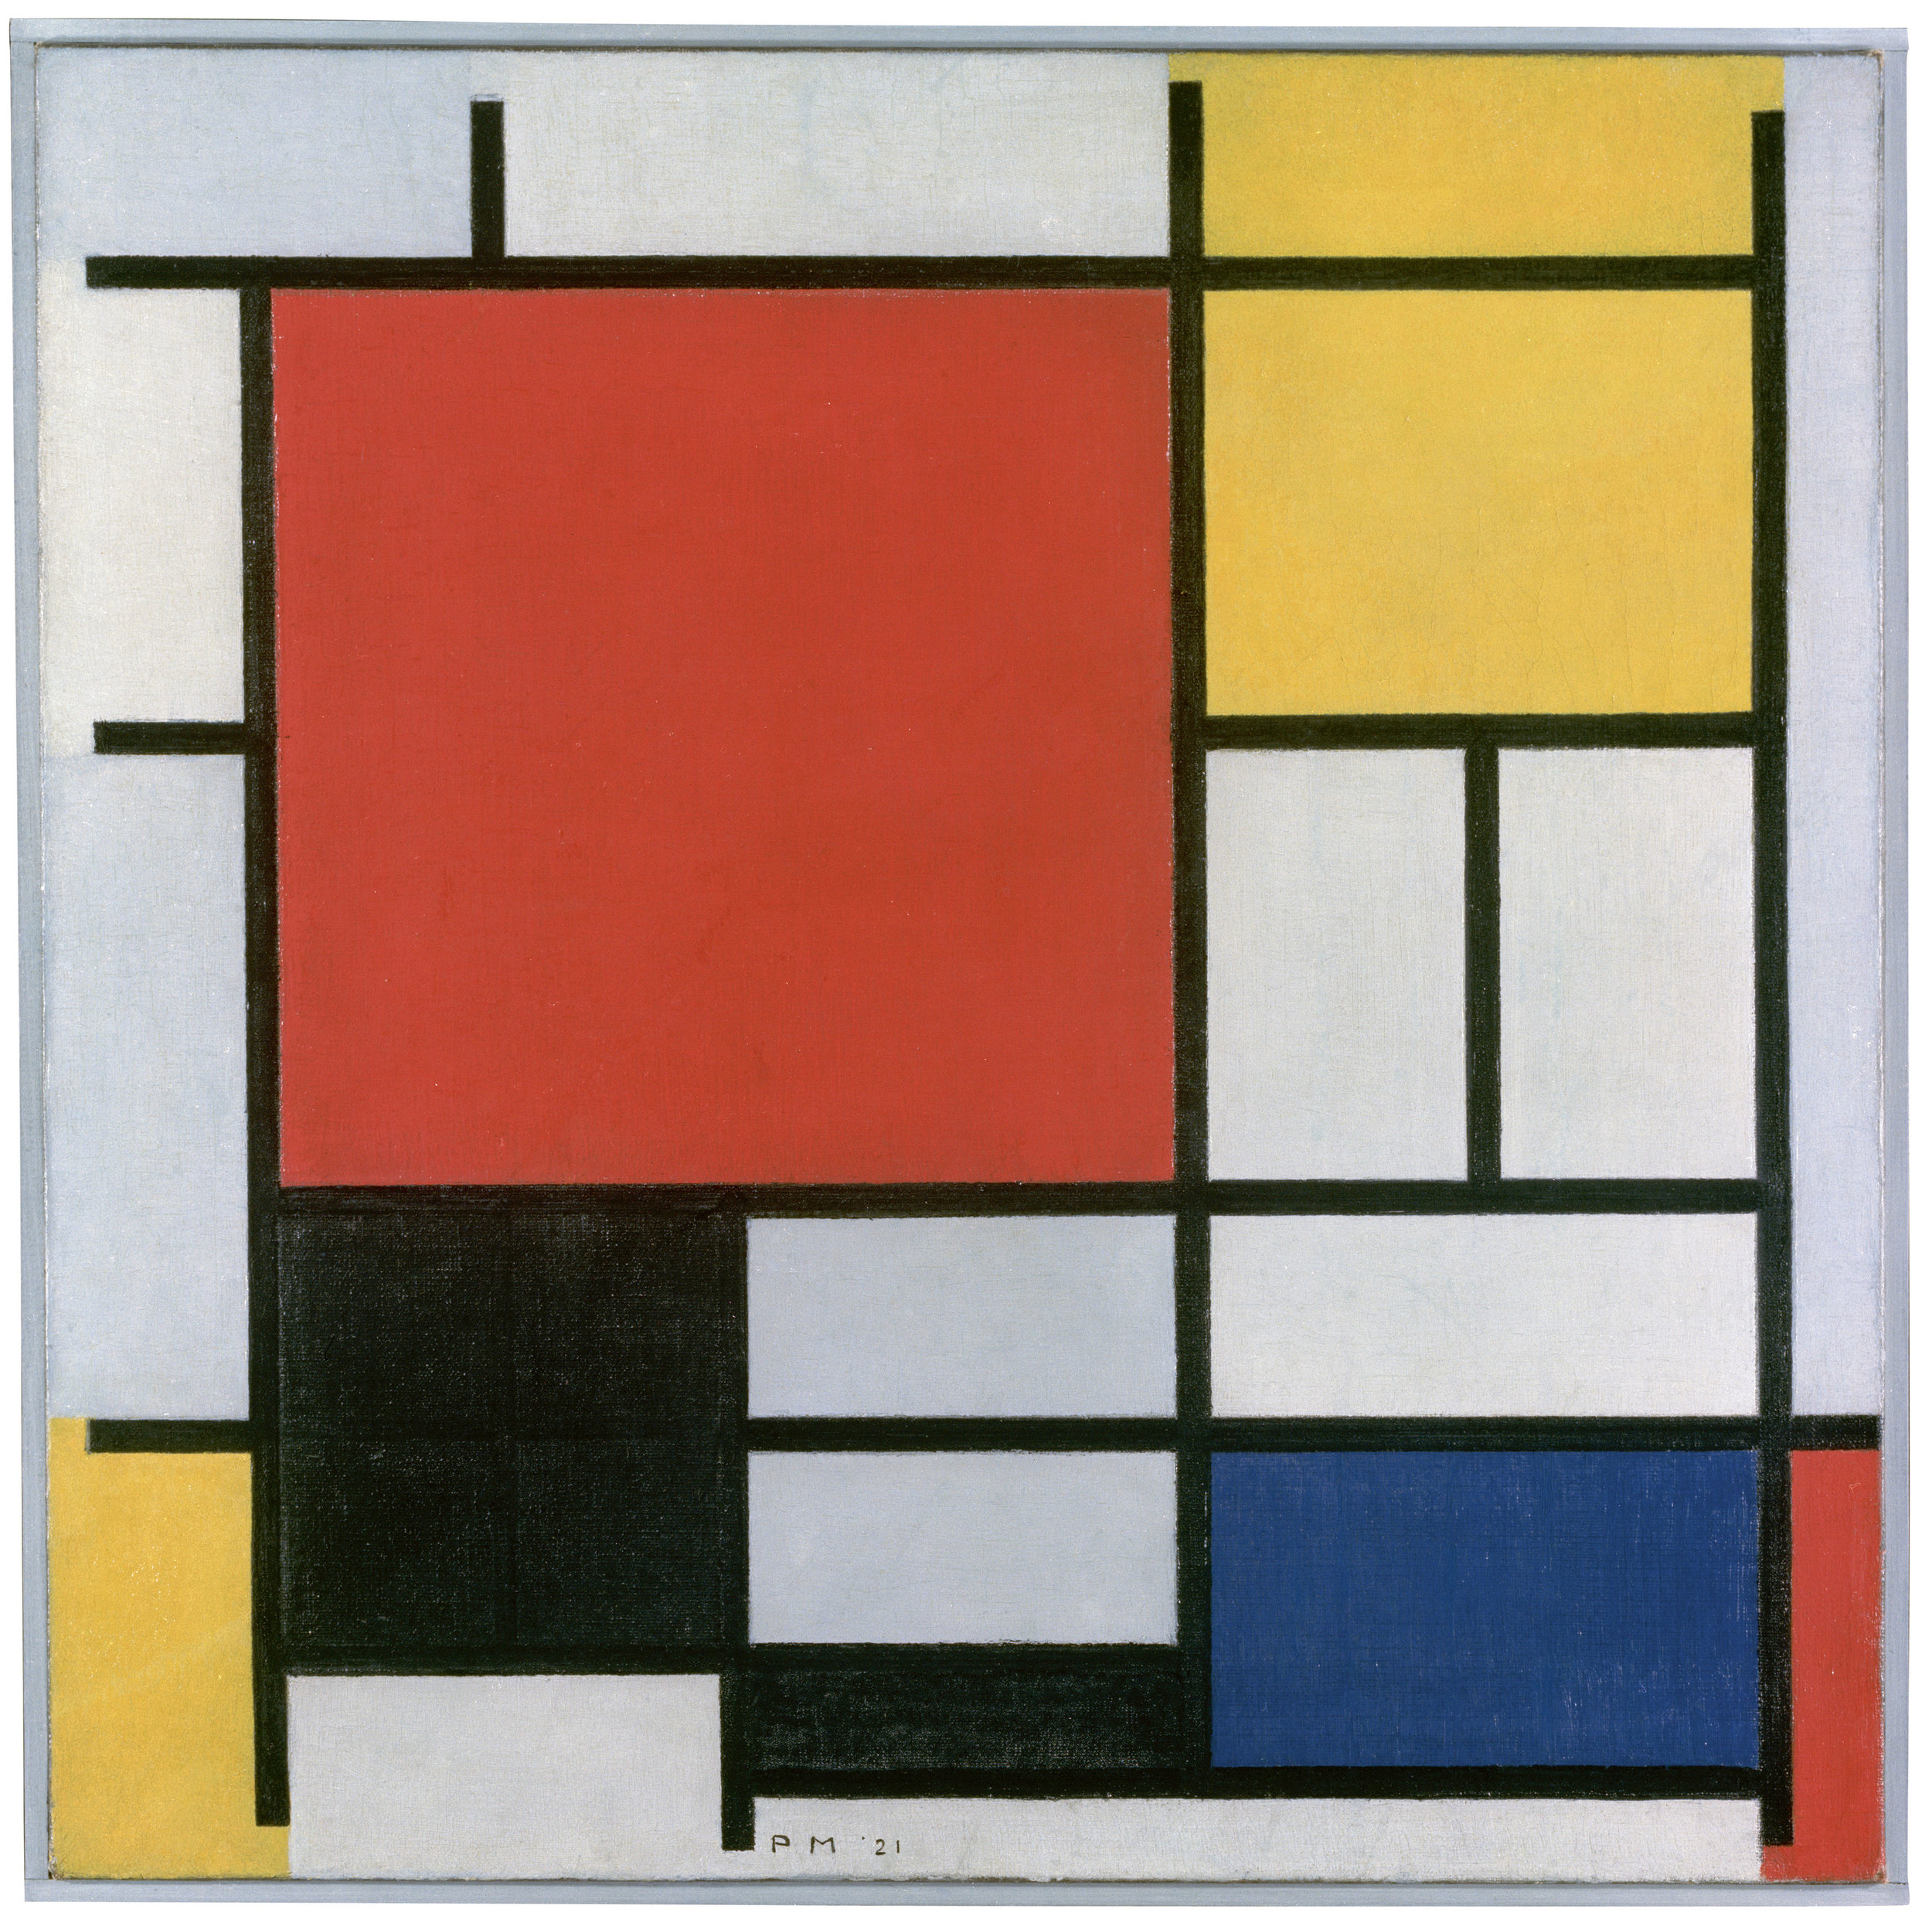 Composition with Large Red Plane, Yellow, Black, Grey and Blue , Piet Mondrian Gemeentemuseum Den Haag, 1921